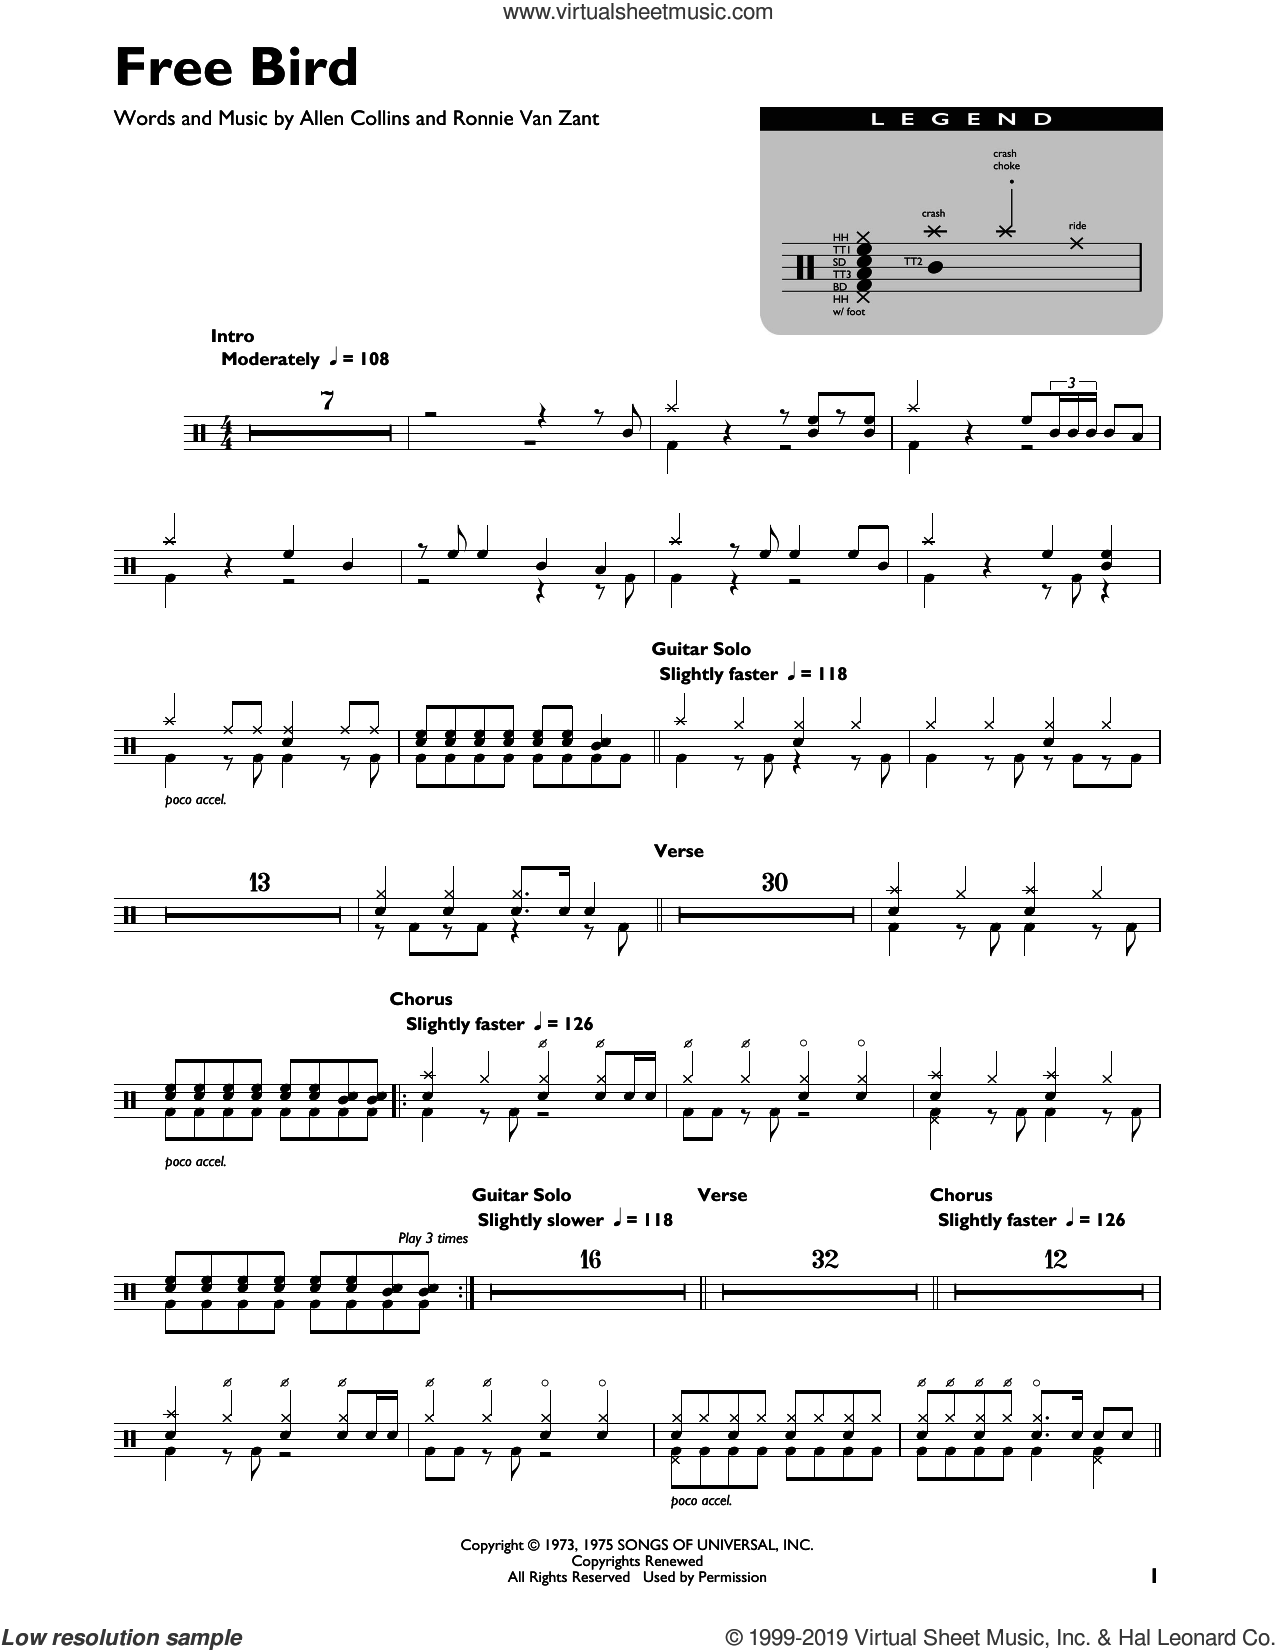 Free Bird sheet music for drums (percussions) by Lynyrd Skynyrd, Allen Collins and Ronnie Van Zant, intermediate skill level